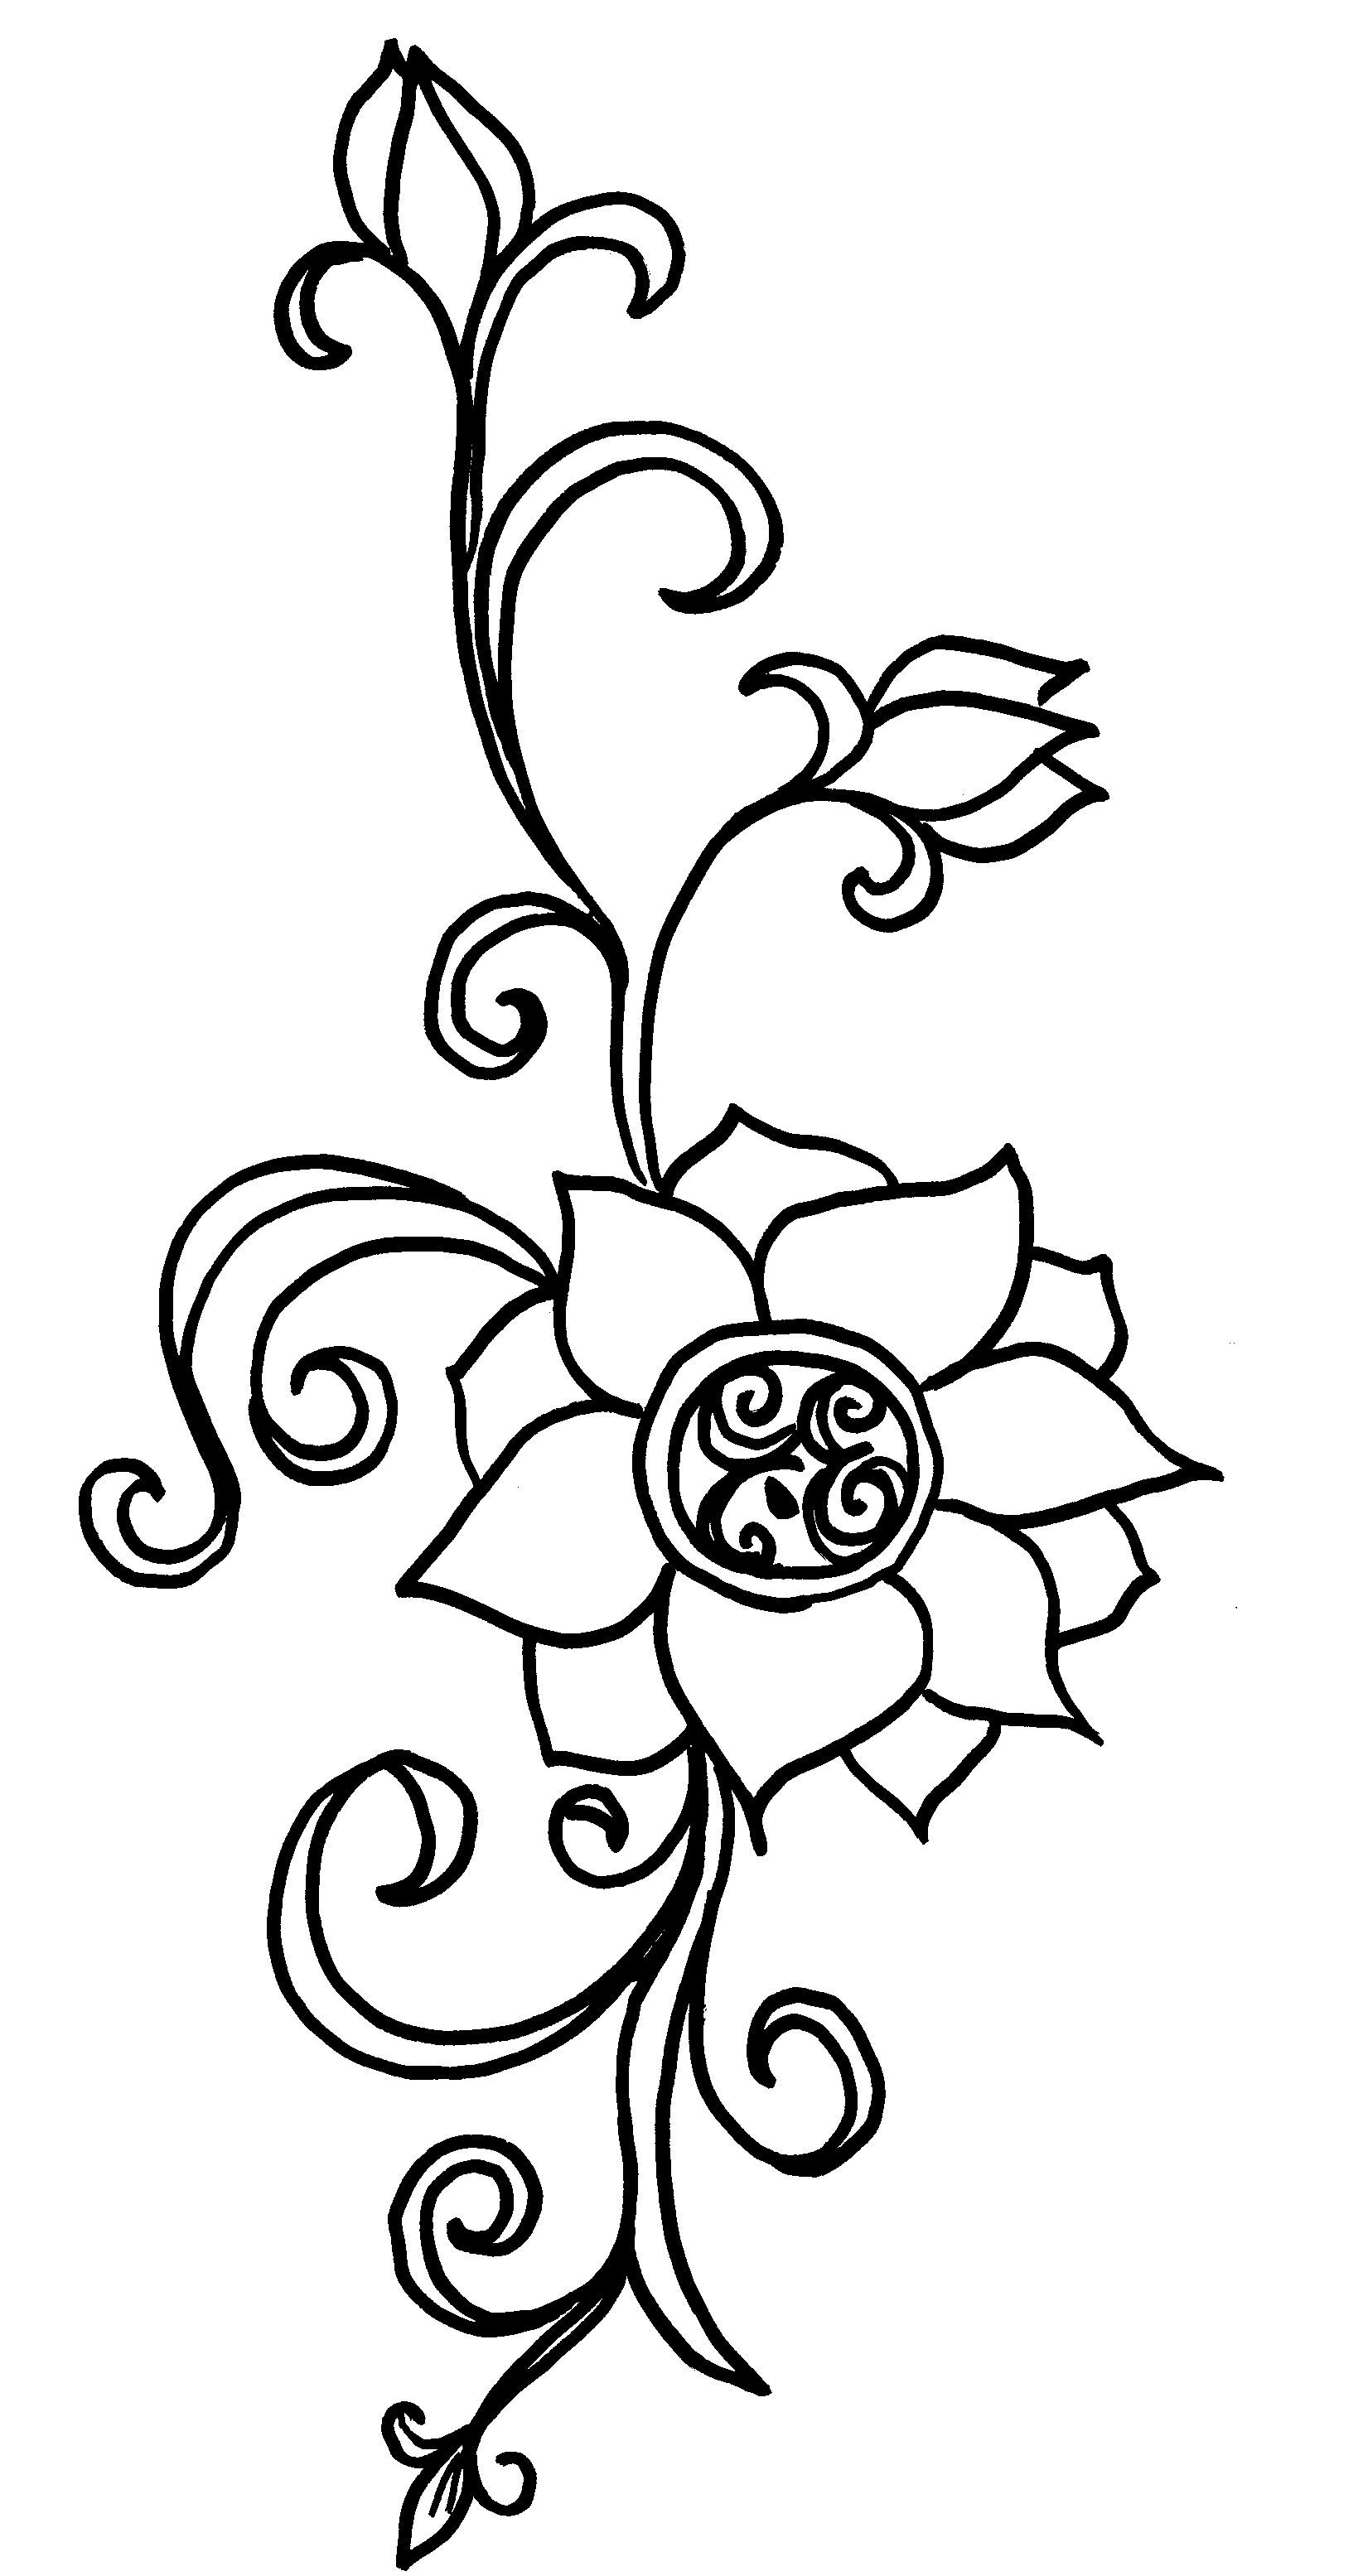 image of lotis flower drawing | Henna-inspired Design ...